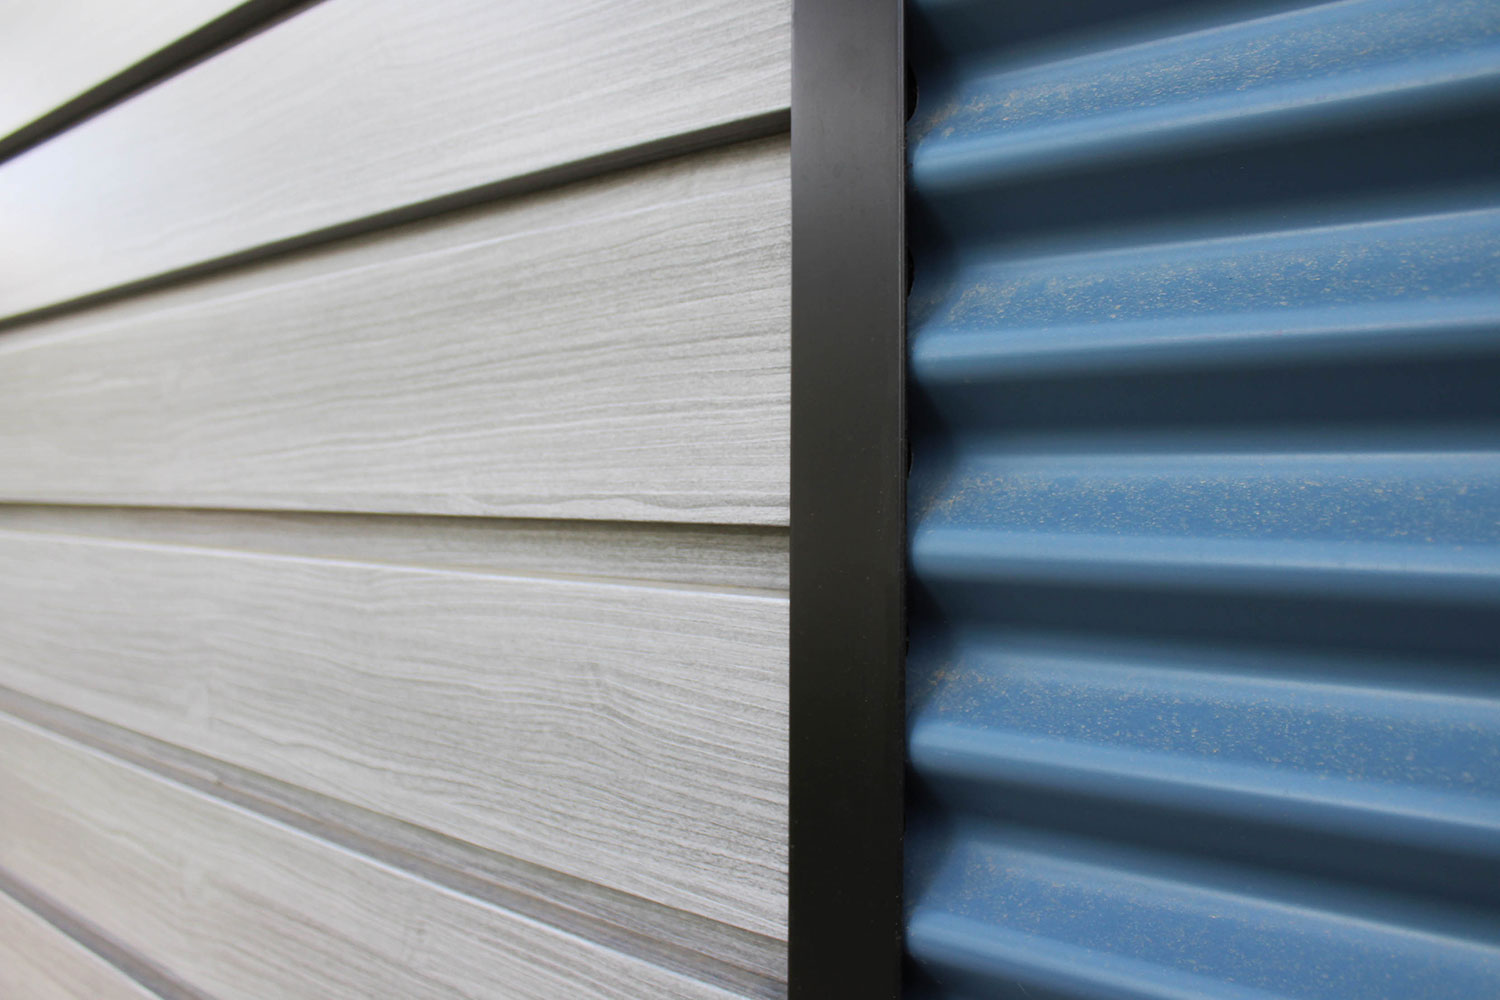 Residential Building with 7/8 Corrugated Oxford Blue Panel and Barnboard Woodgrain